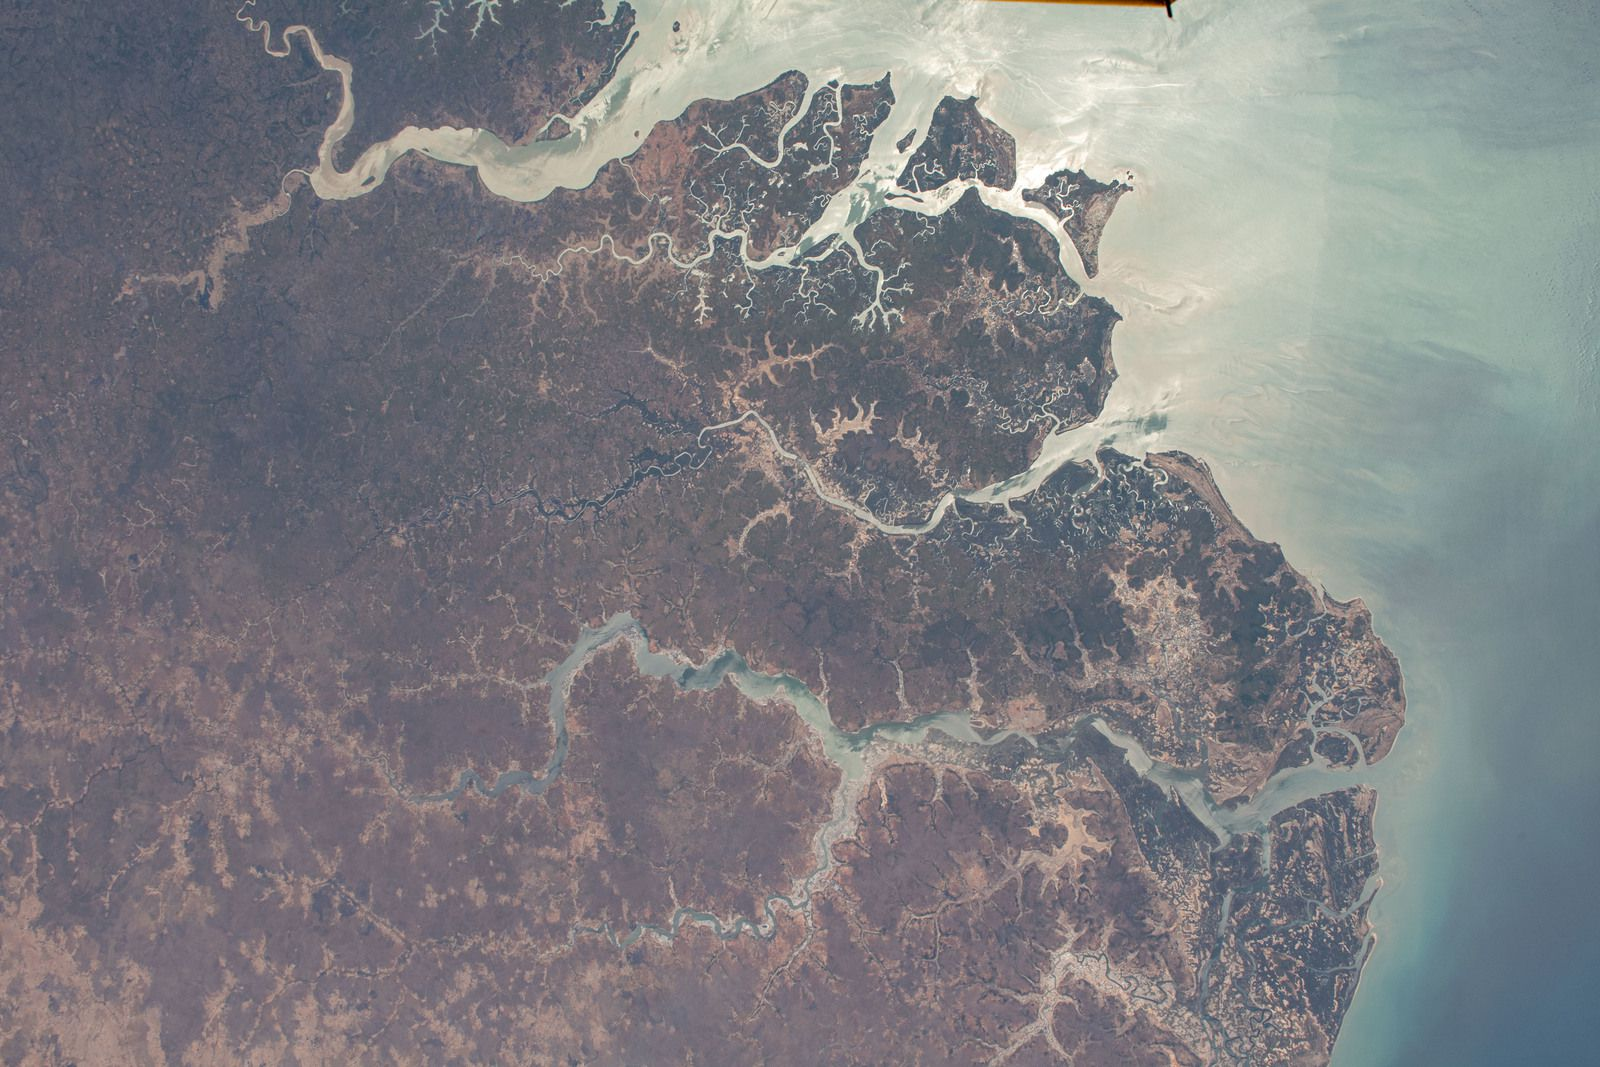 Rio Geba in Guinea-Bissau ( pictured from the International Space Station)